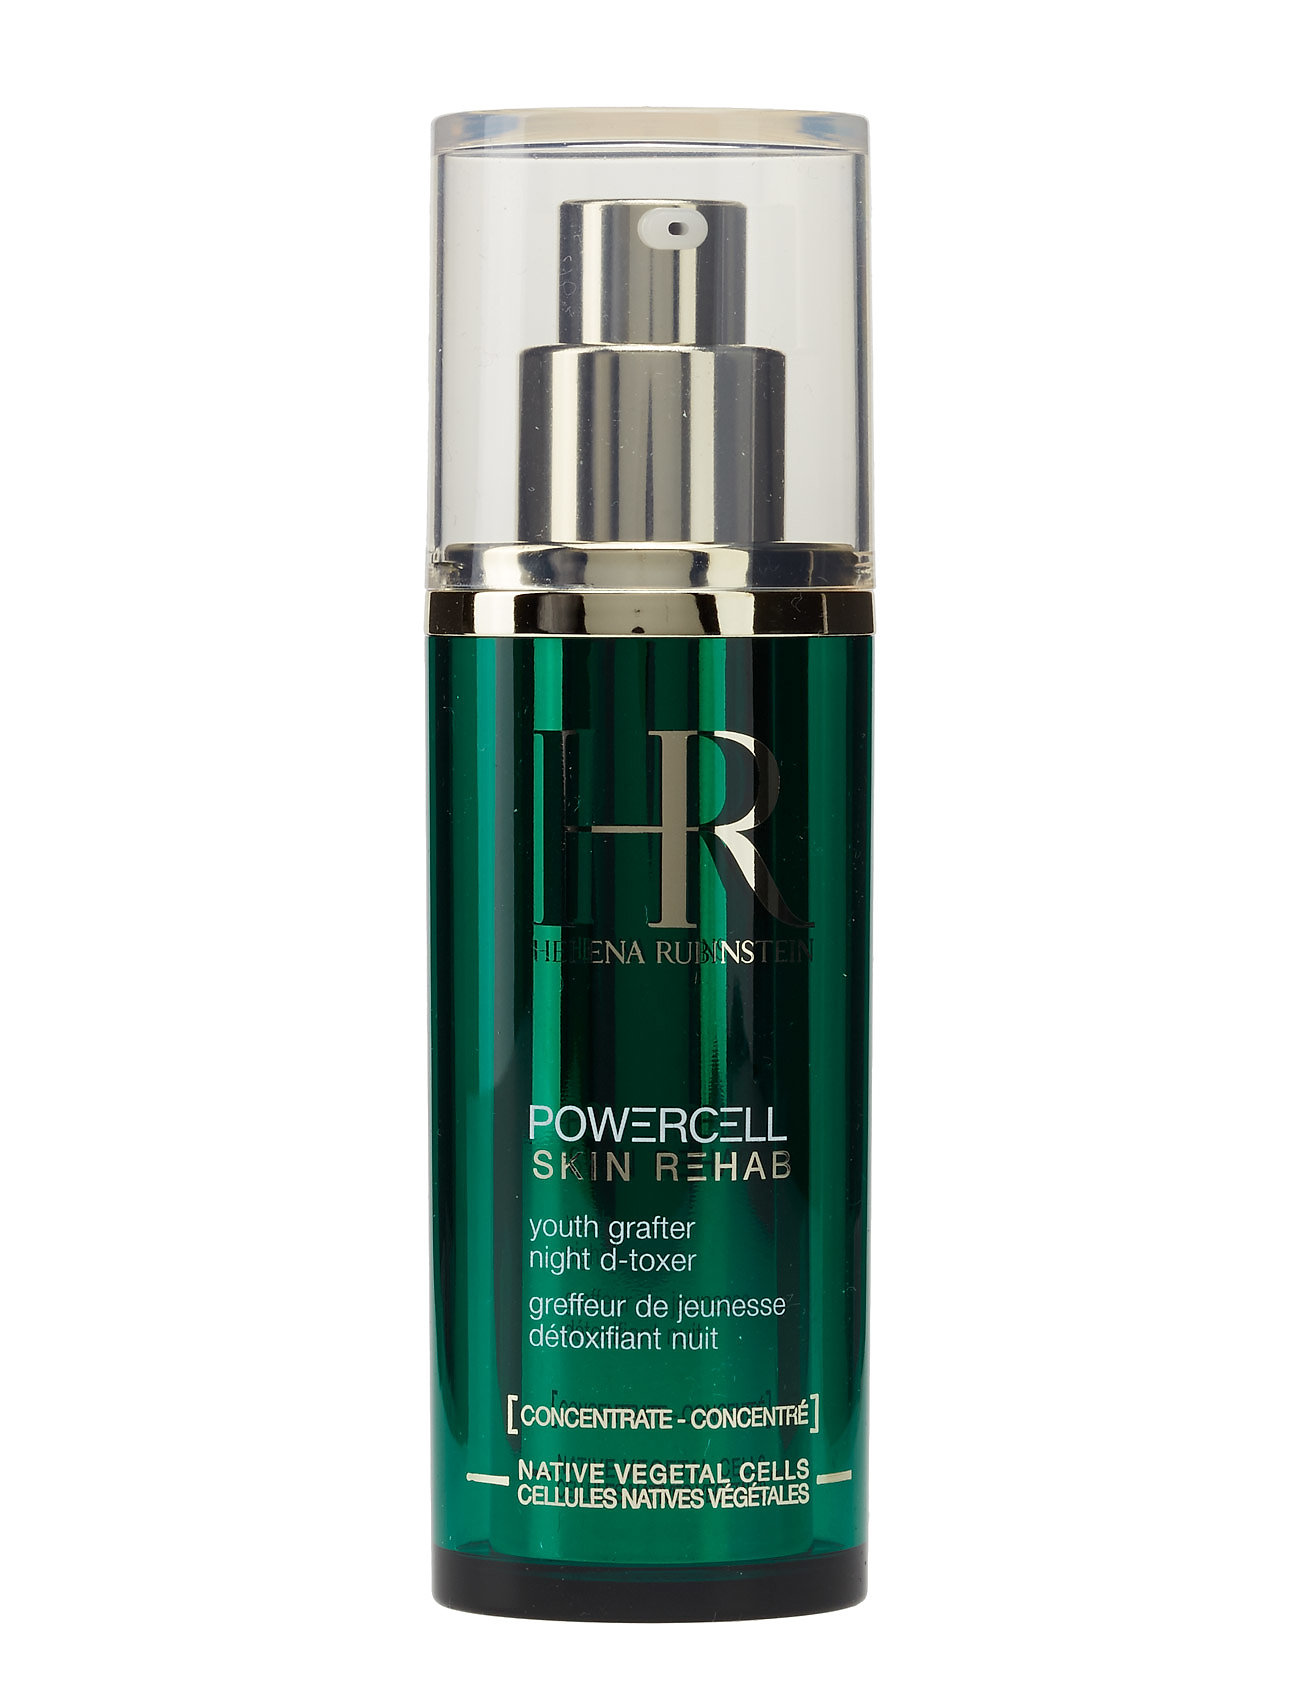 Image of Powercell Skin Rehab 30 Ml Serum Ansigtspleje Nude Helena Rubinstein (3271714691)